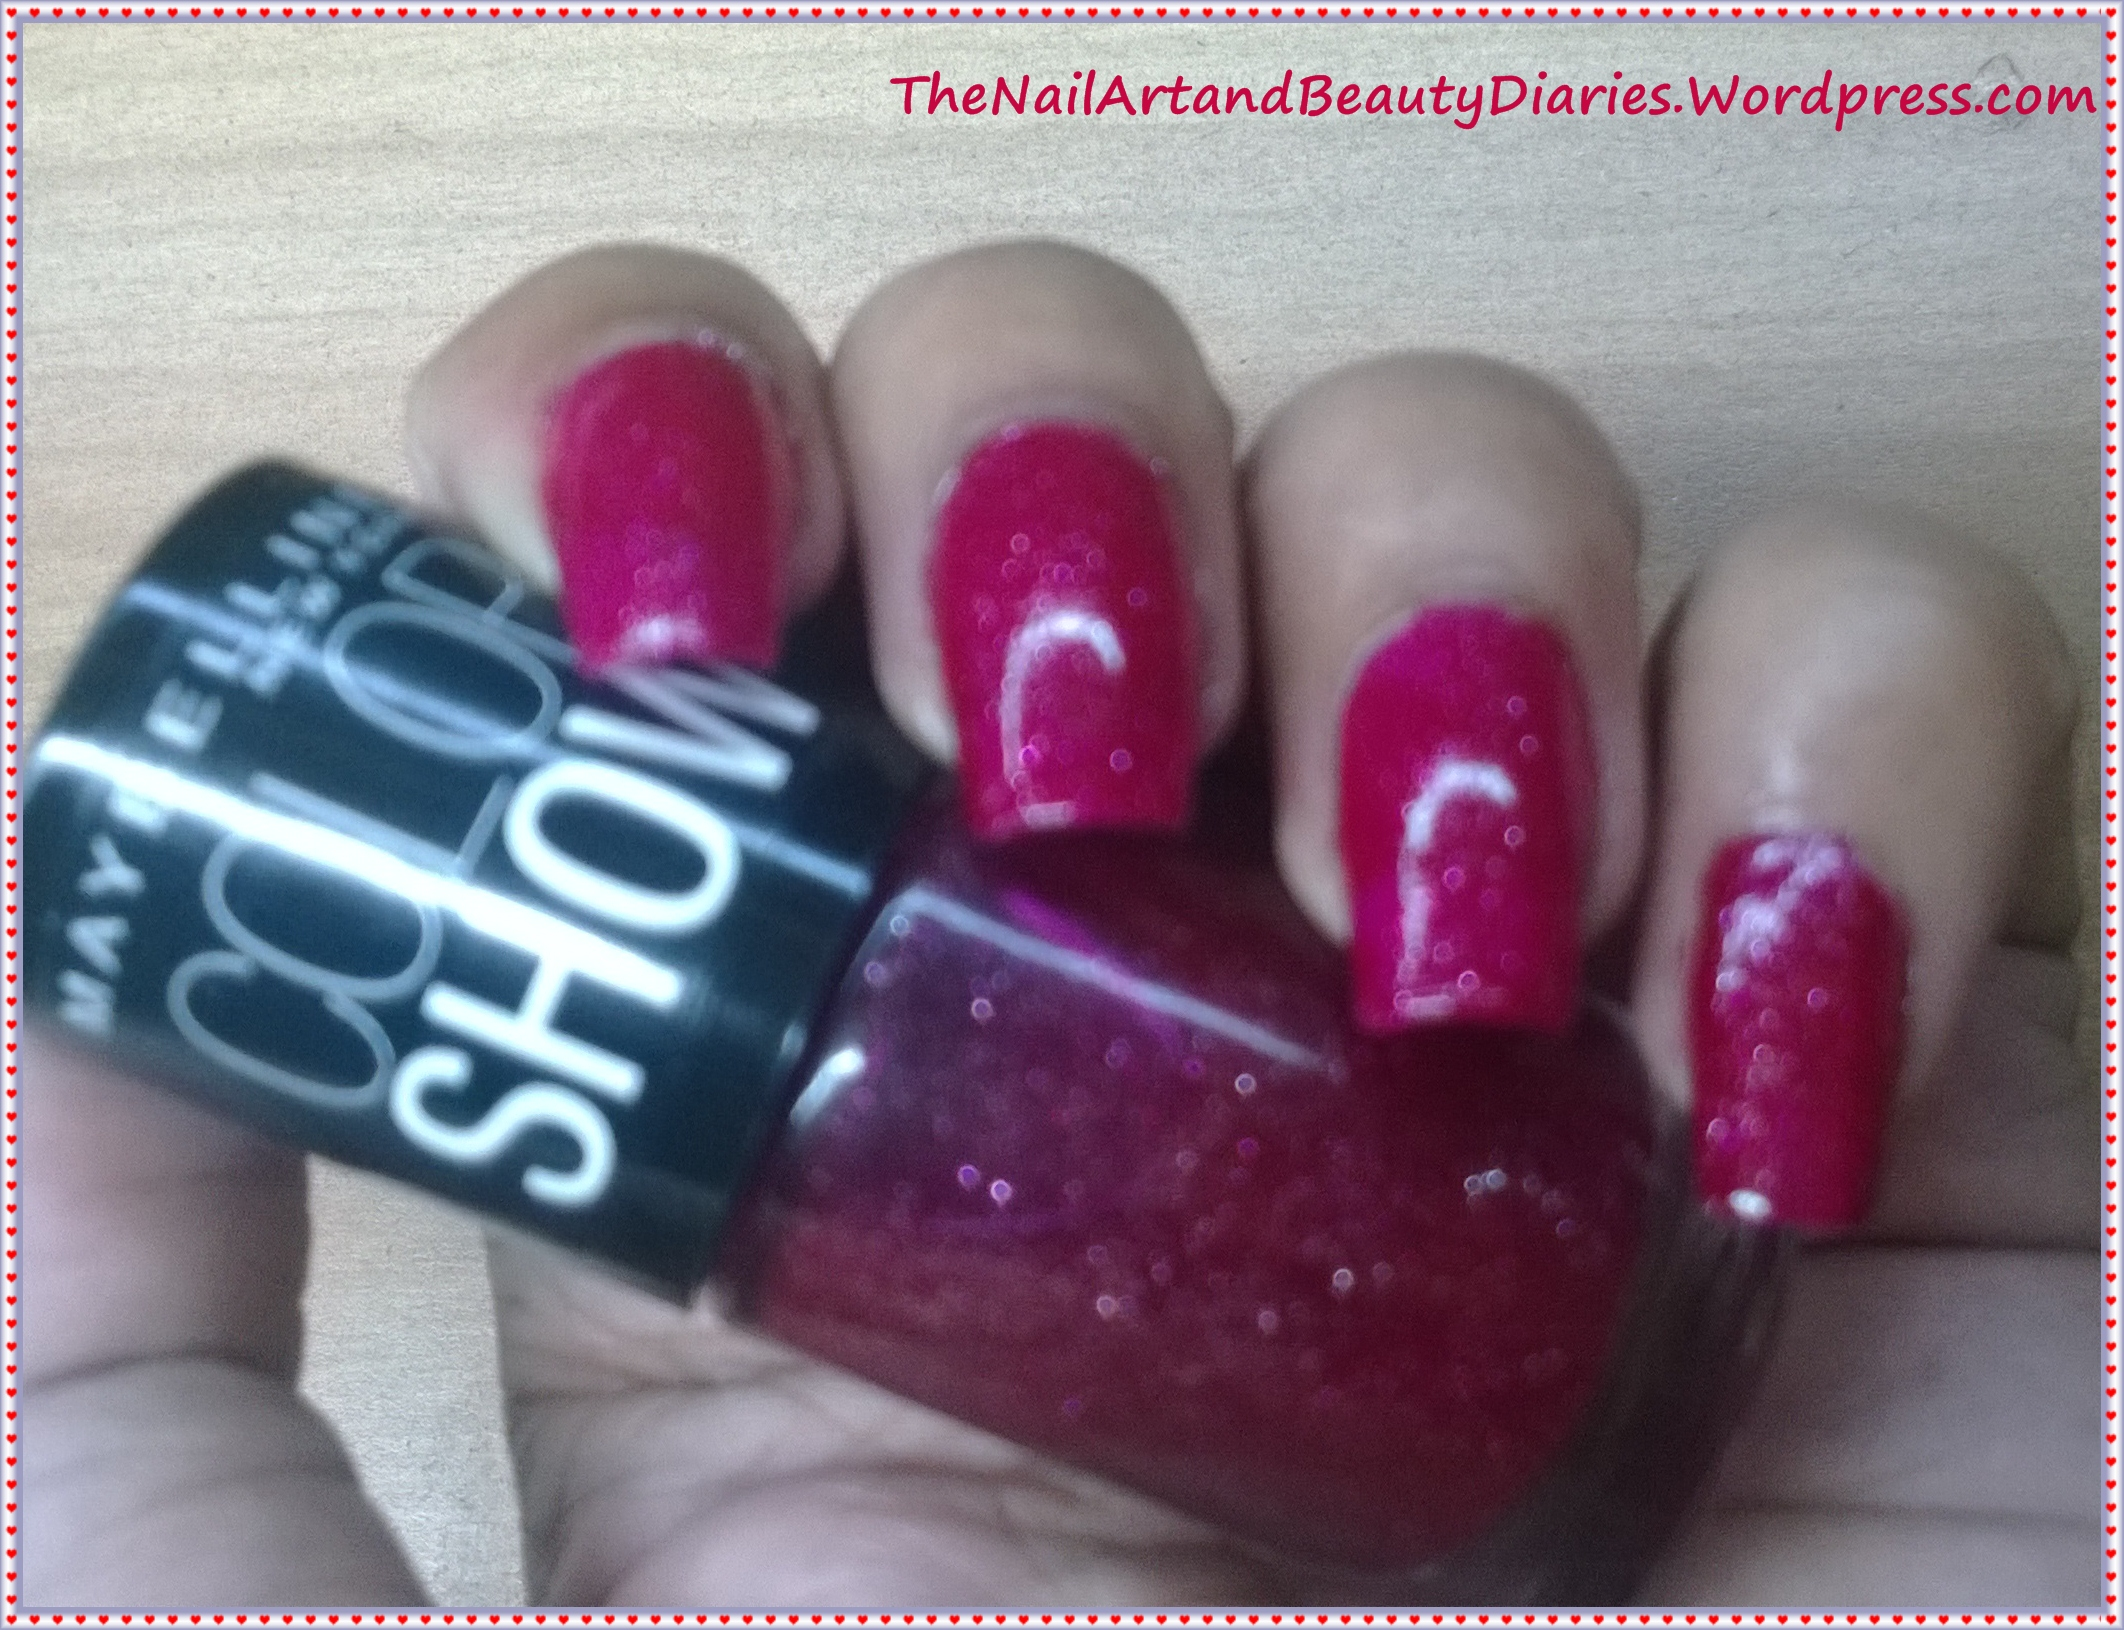 Maybelline Color Show Velvet Wine Nail Polish Review | The Nail Art ...